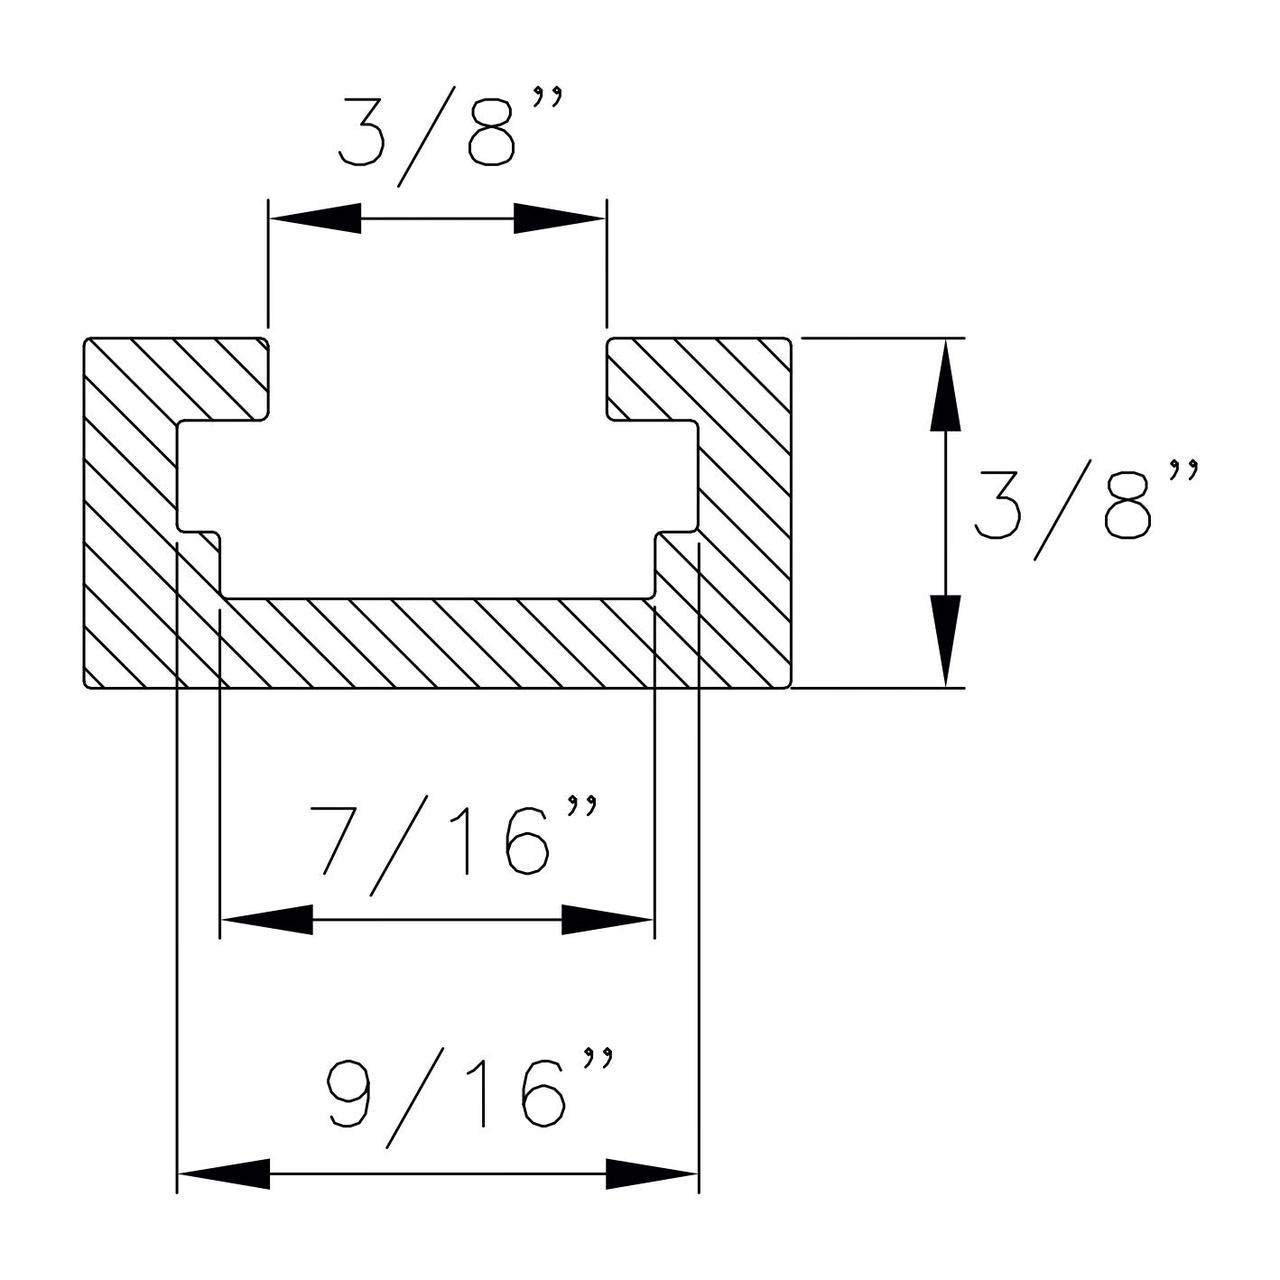 POWERTEC 71373 Double-Cut Profile Universal T-Track with Predrilled Mounting Holes 48-Inch 4PK